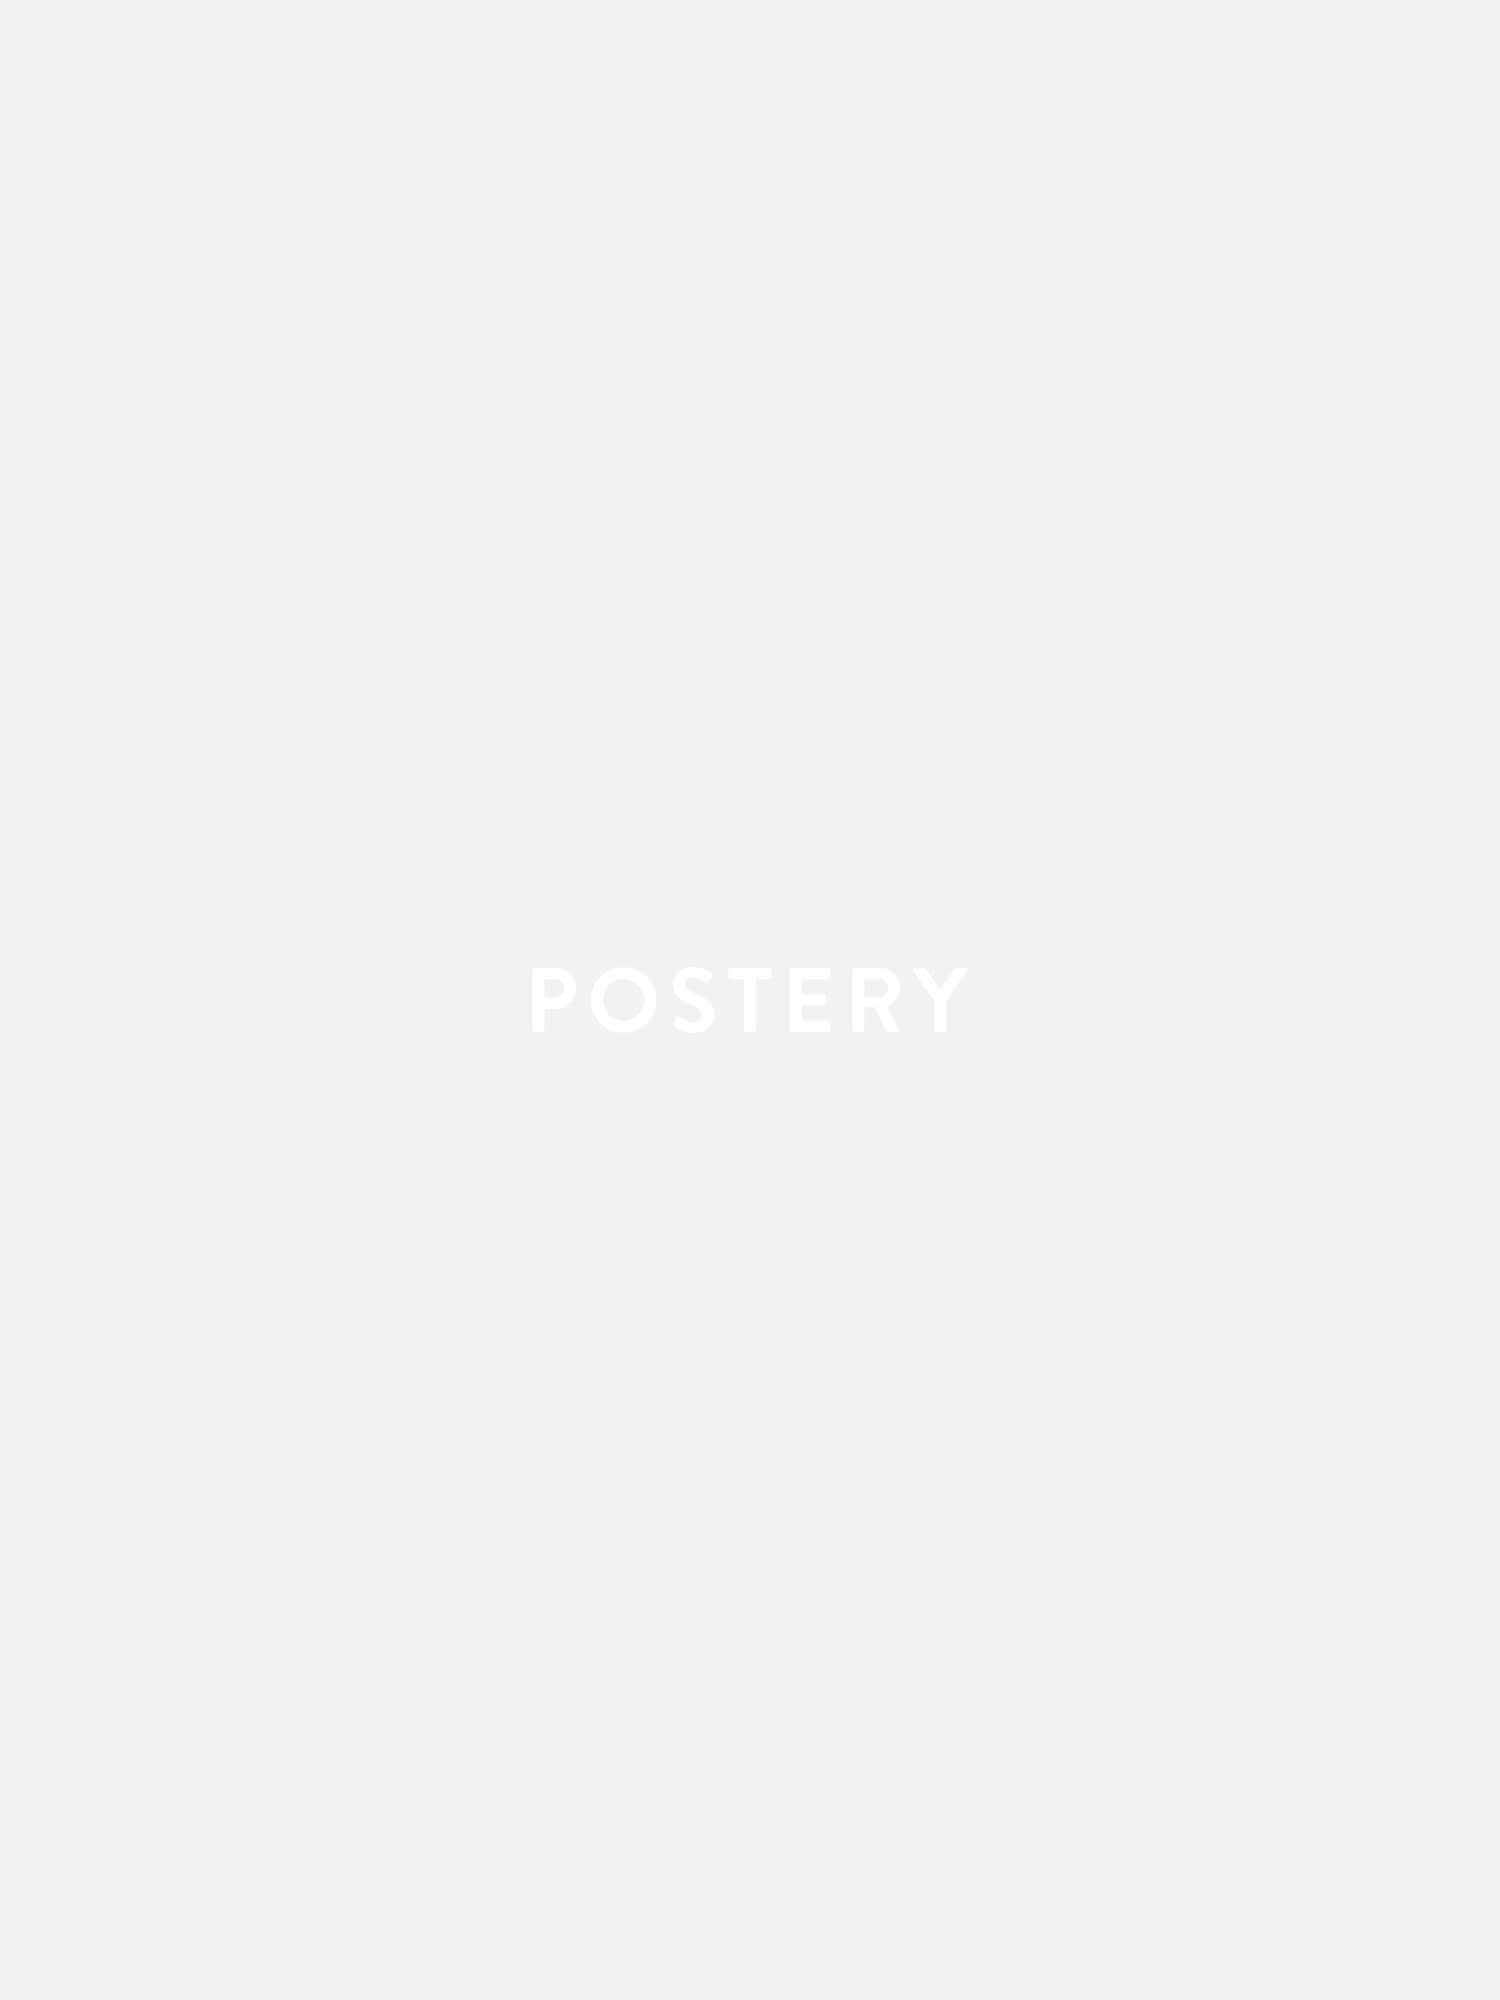 Baby with Poodle Poster